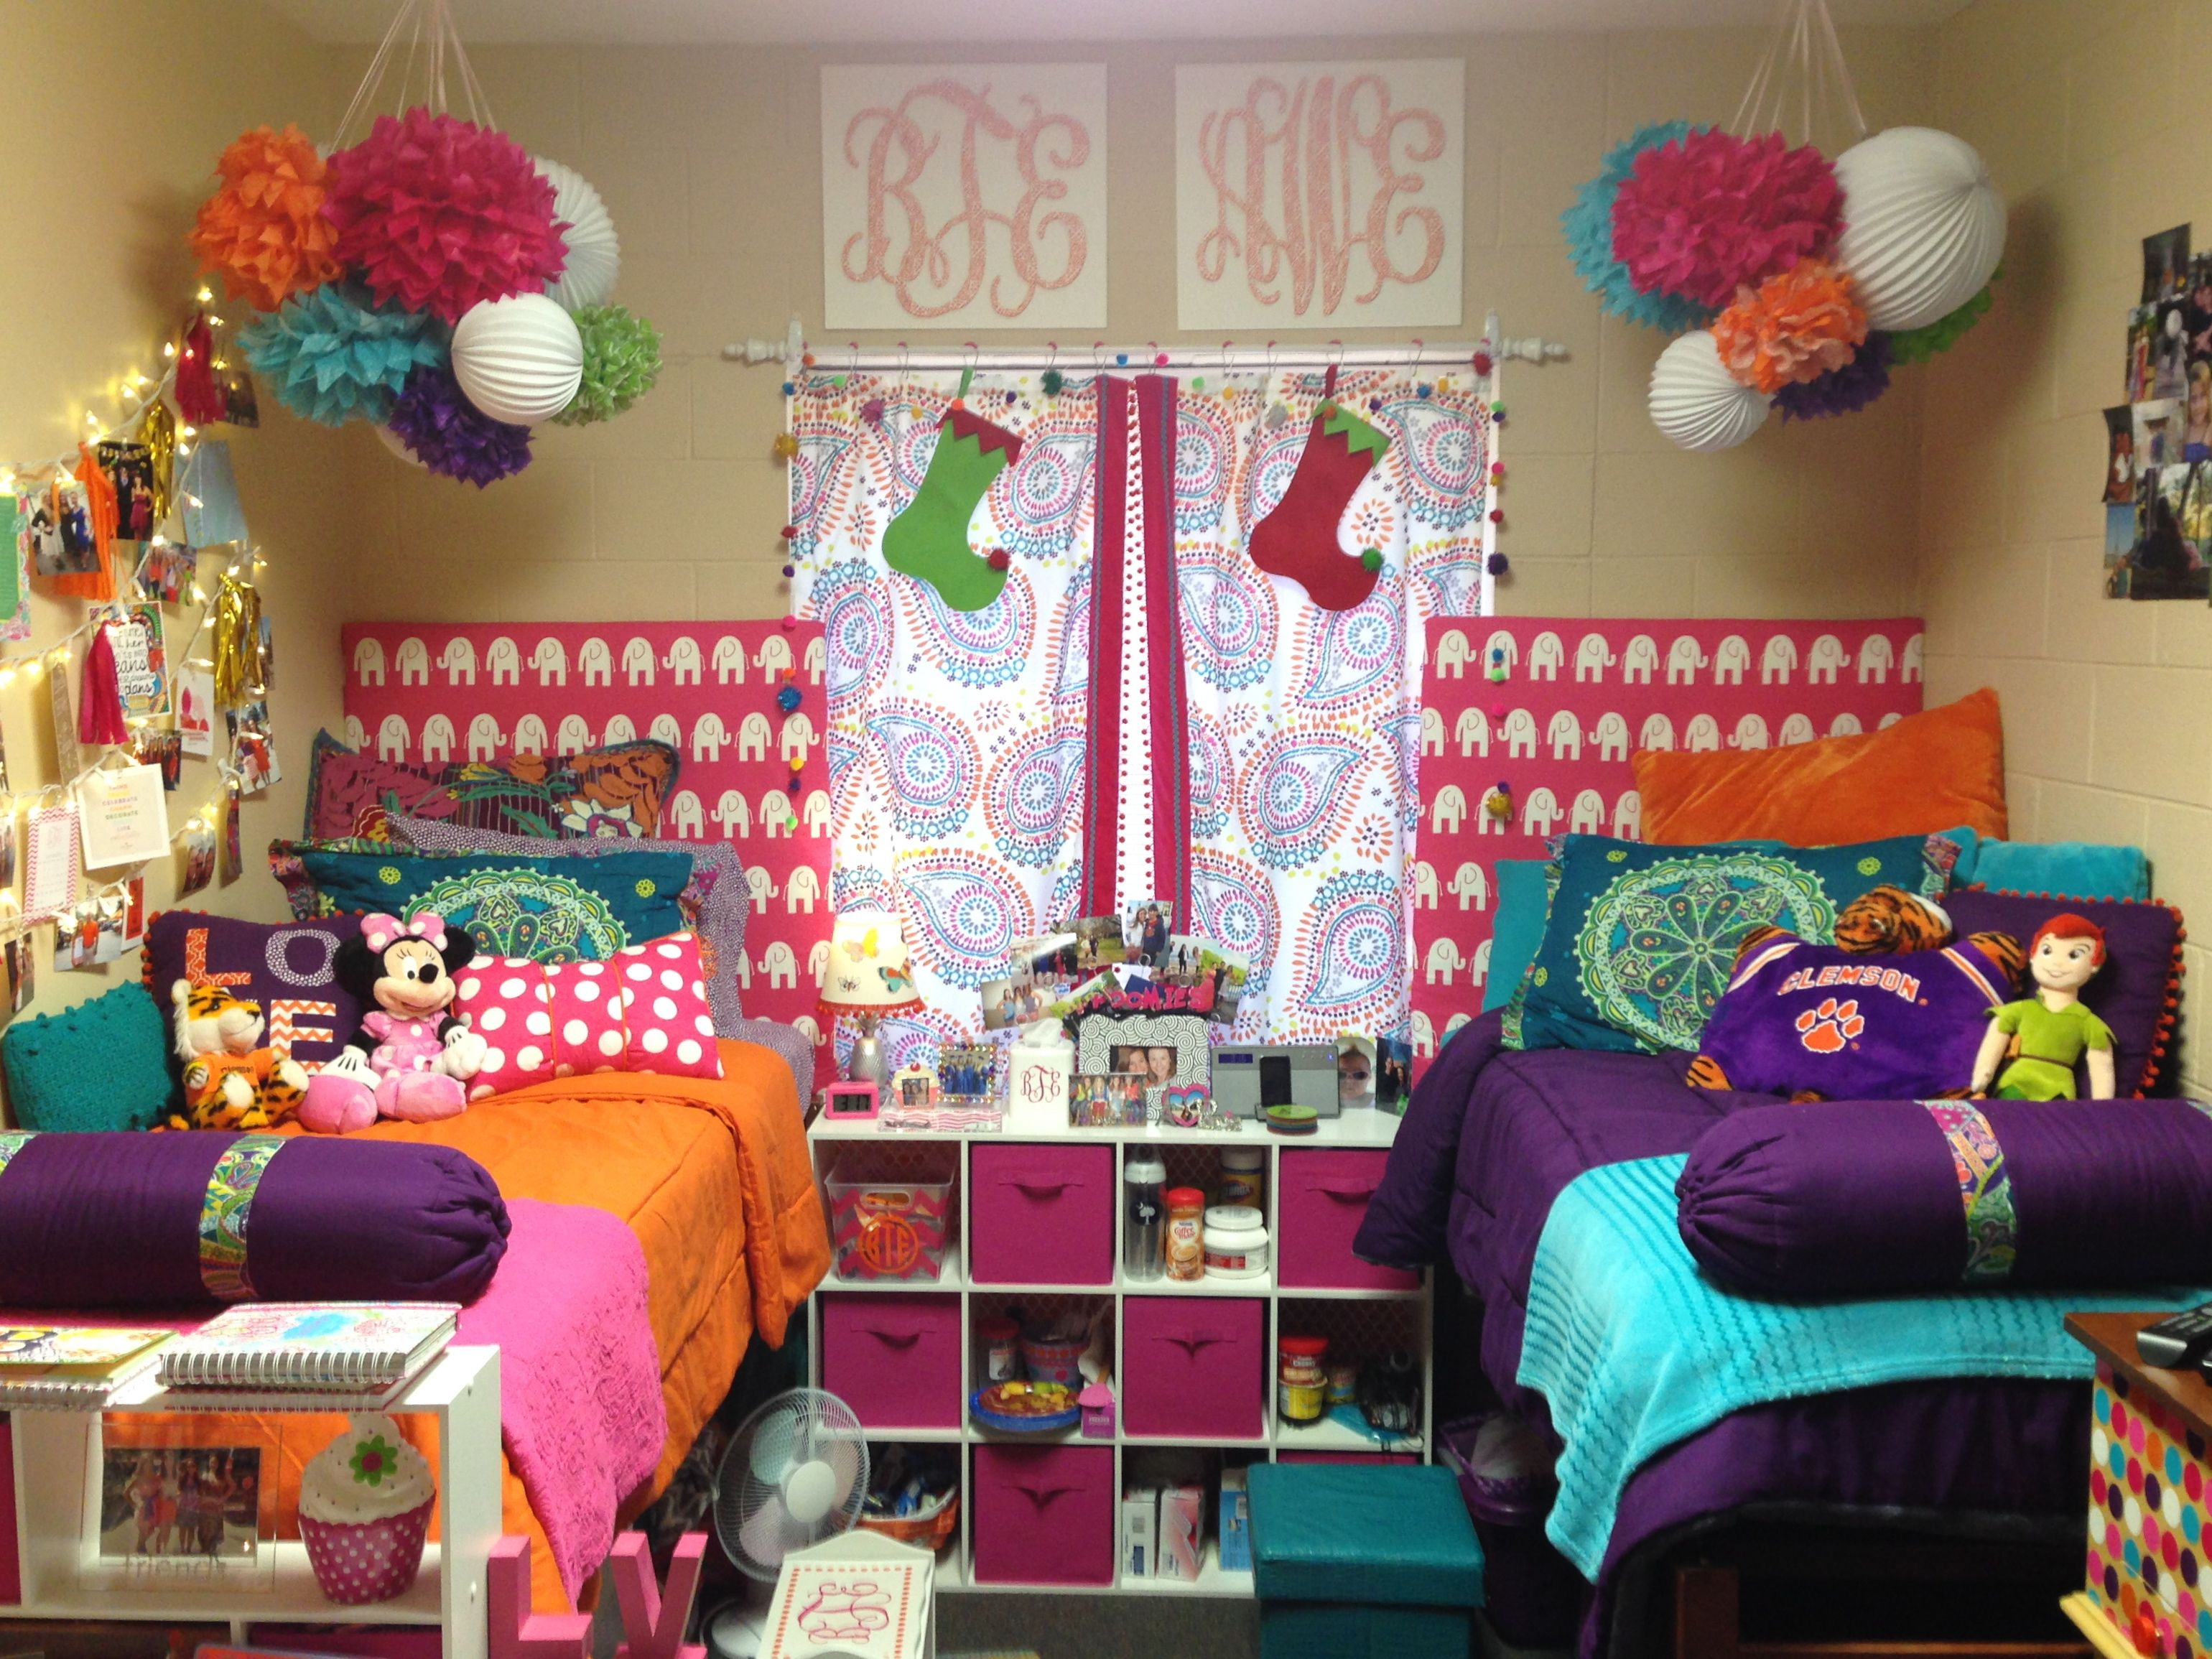 17 best images about dorm room ideas on pinterest colleges dorm rooms decorating and under bed - Dorm Design Ideas